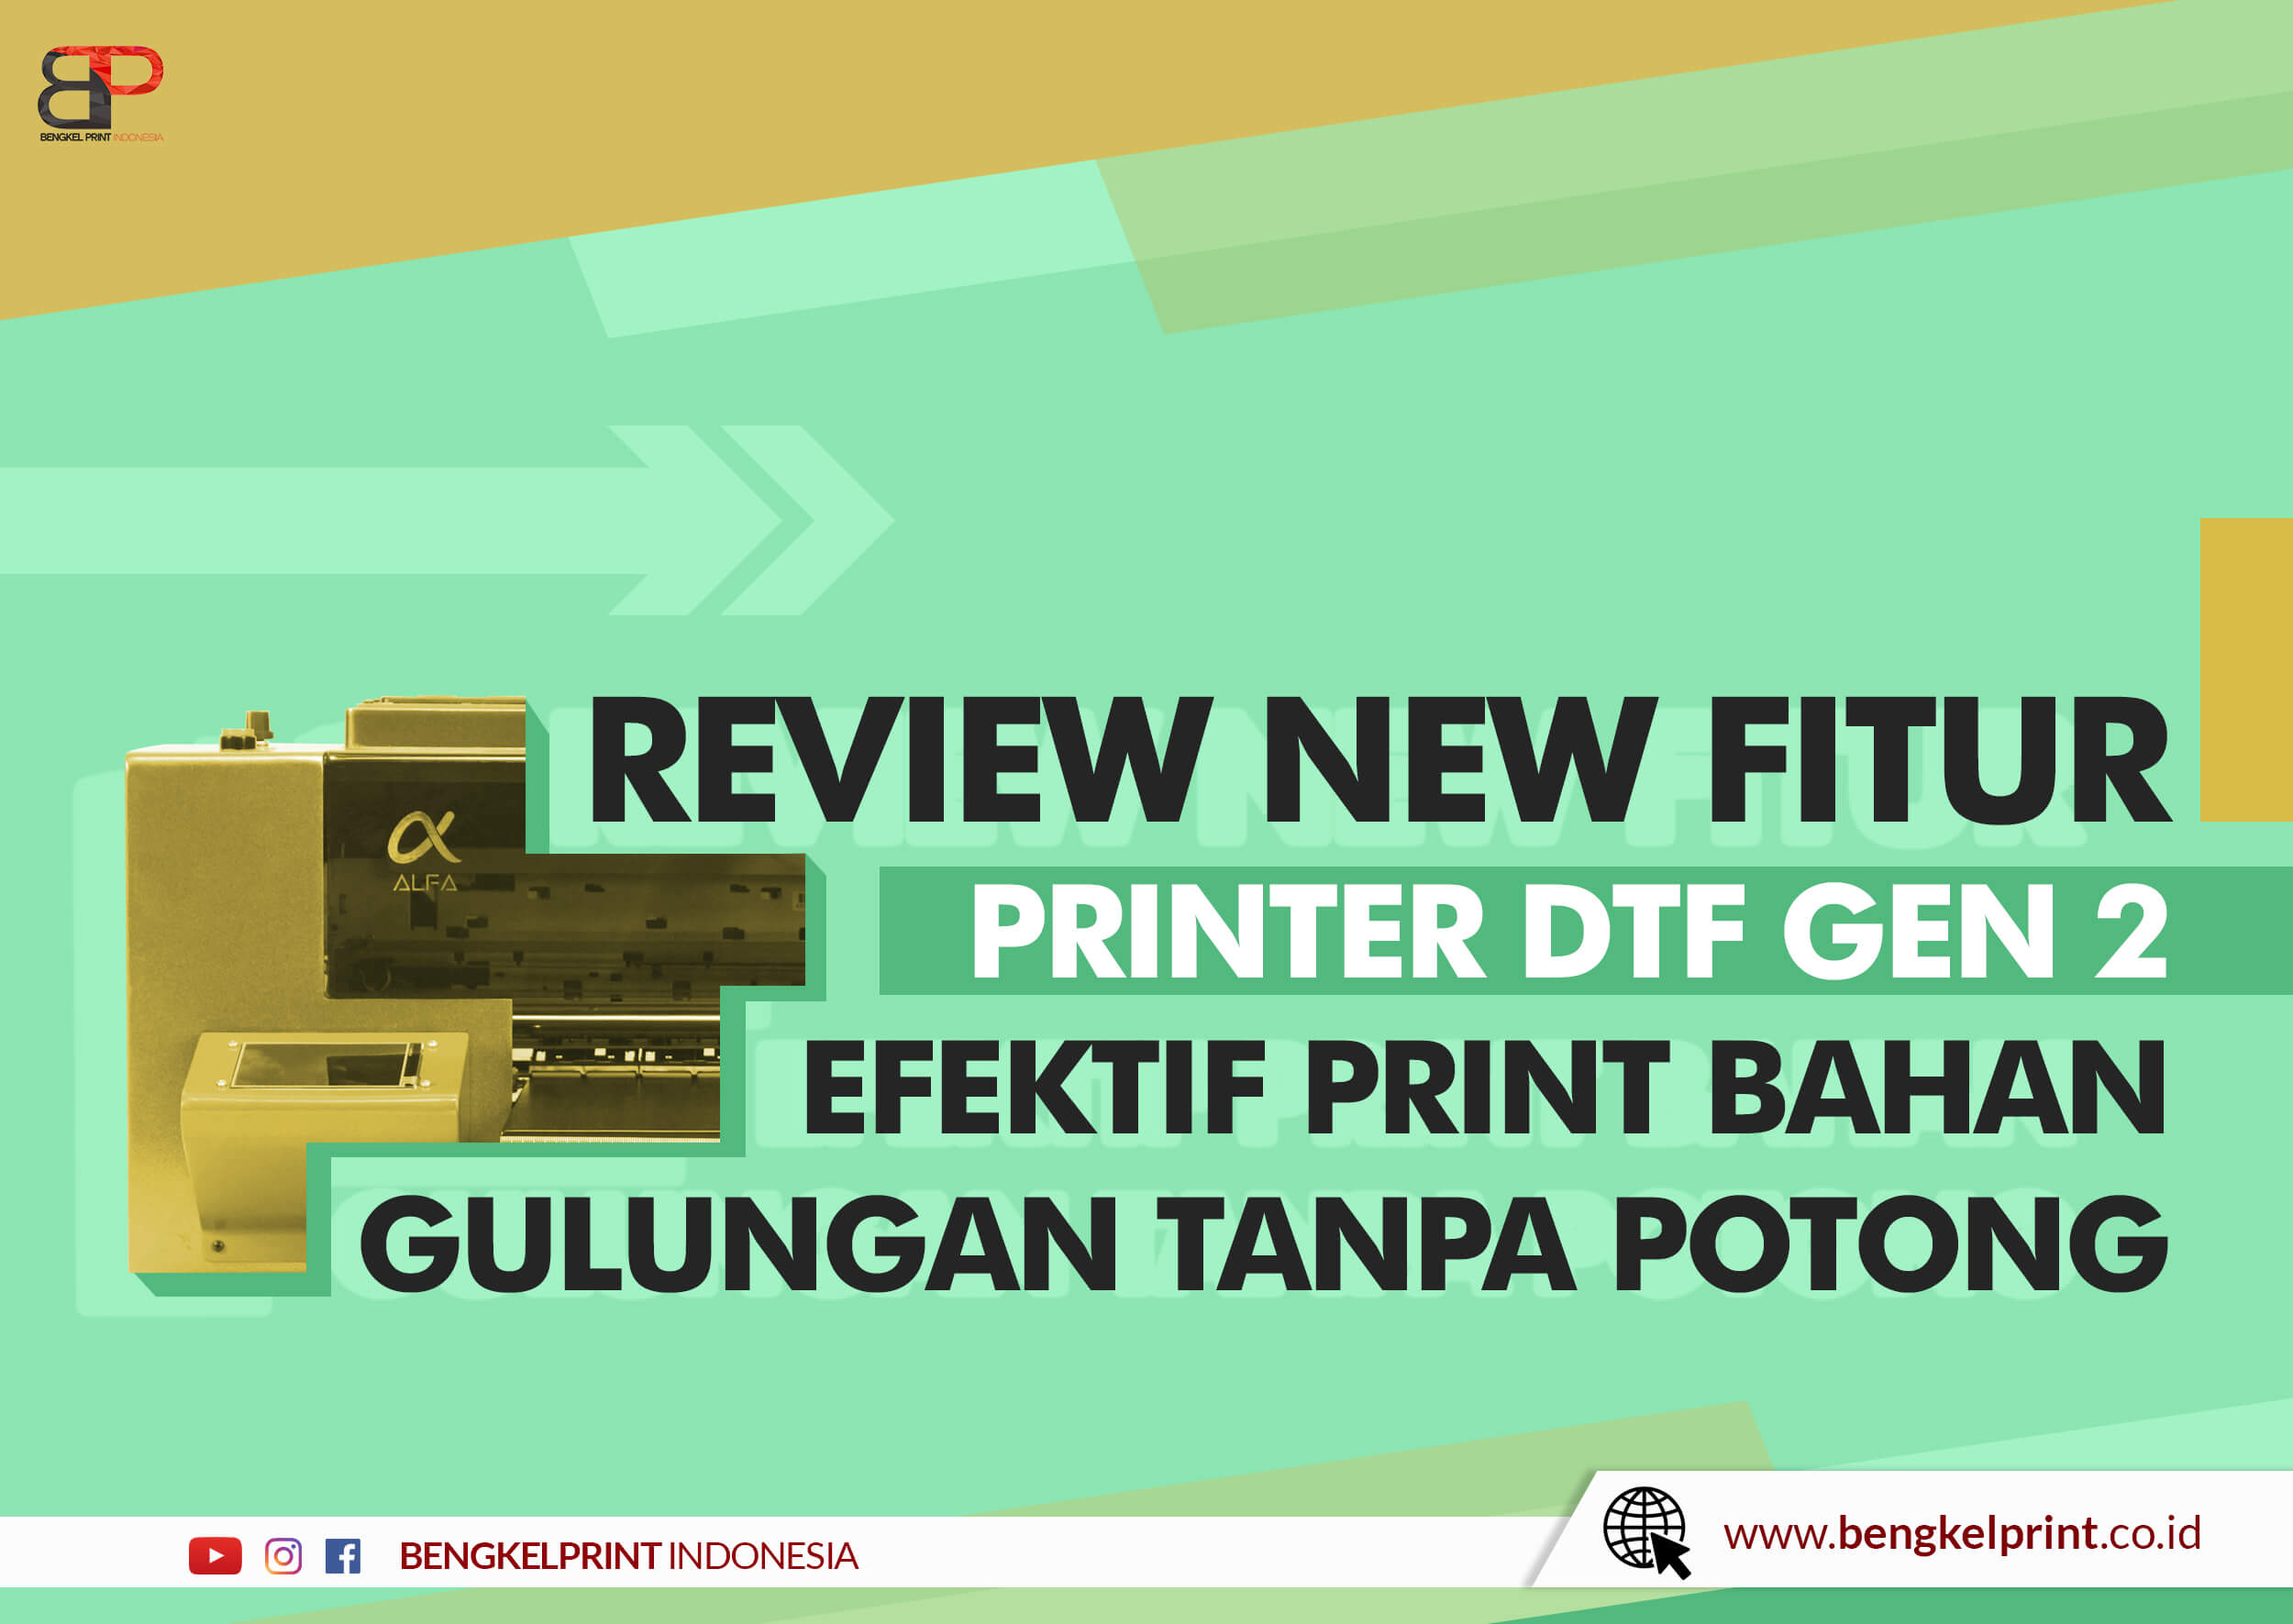 Mesin Printer Riecat Alfa Generasi 2